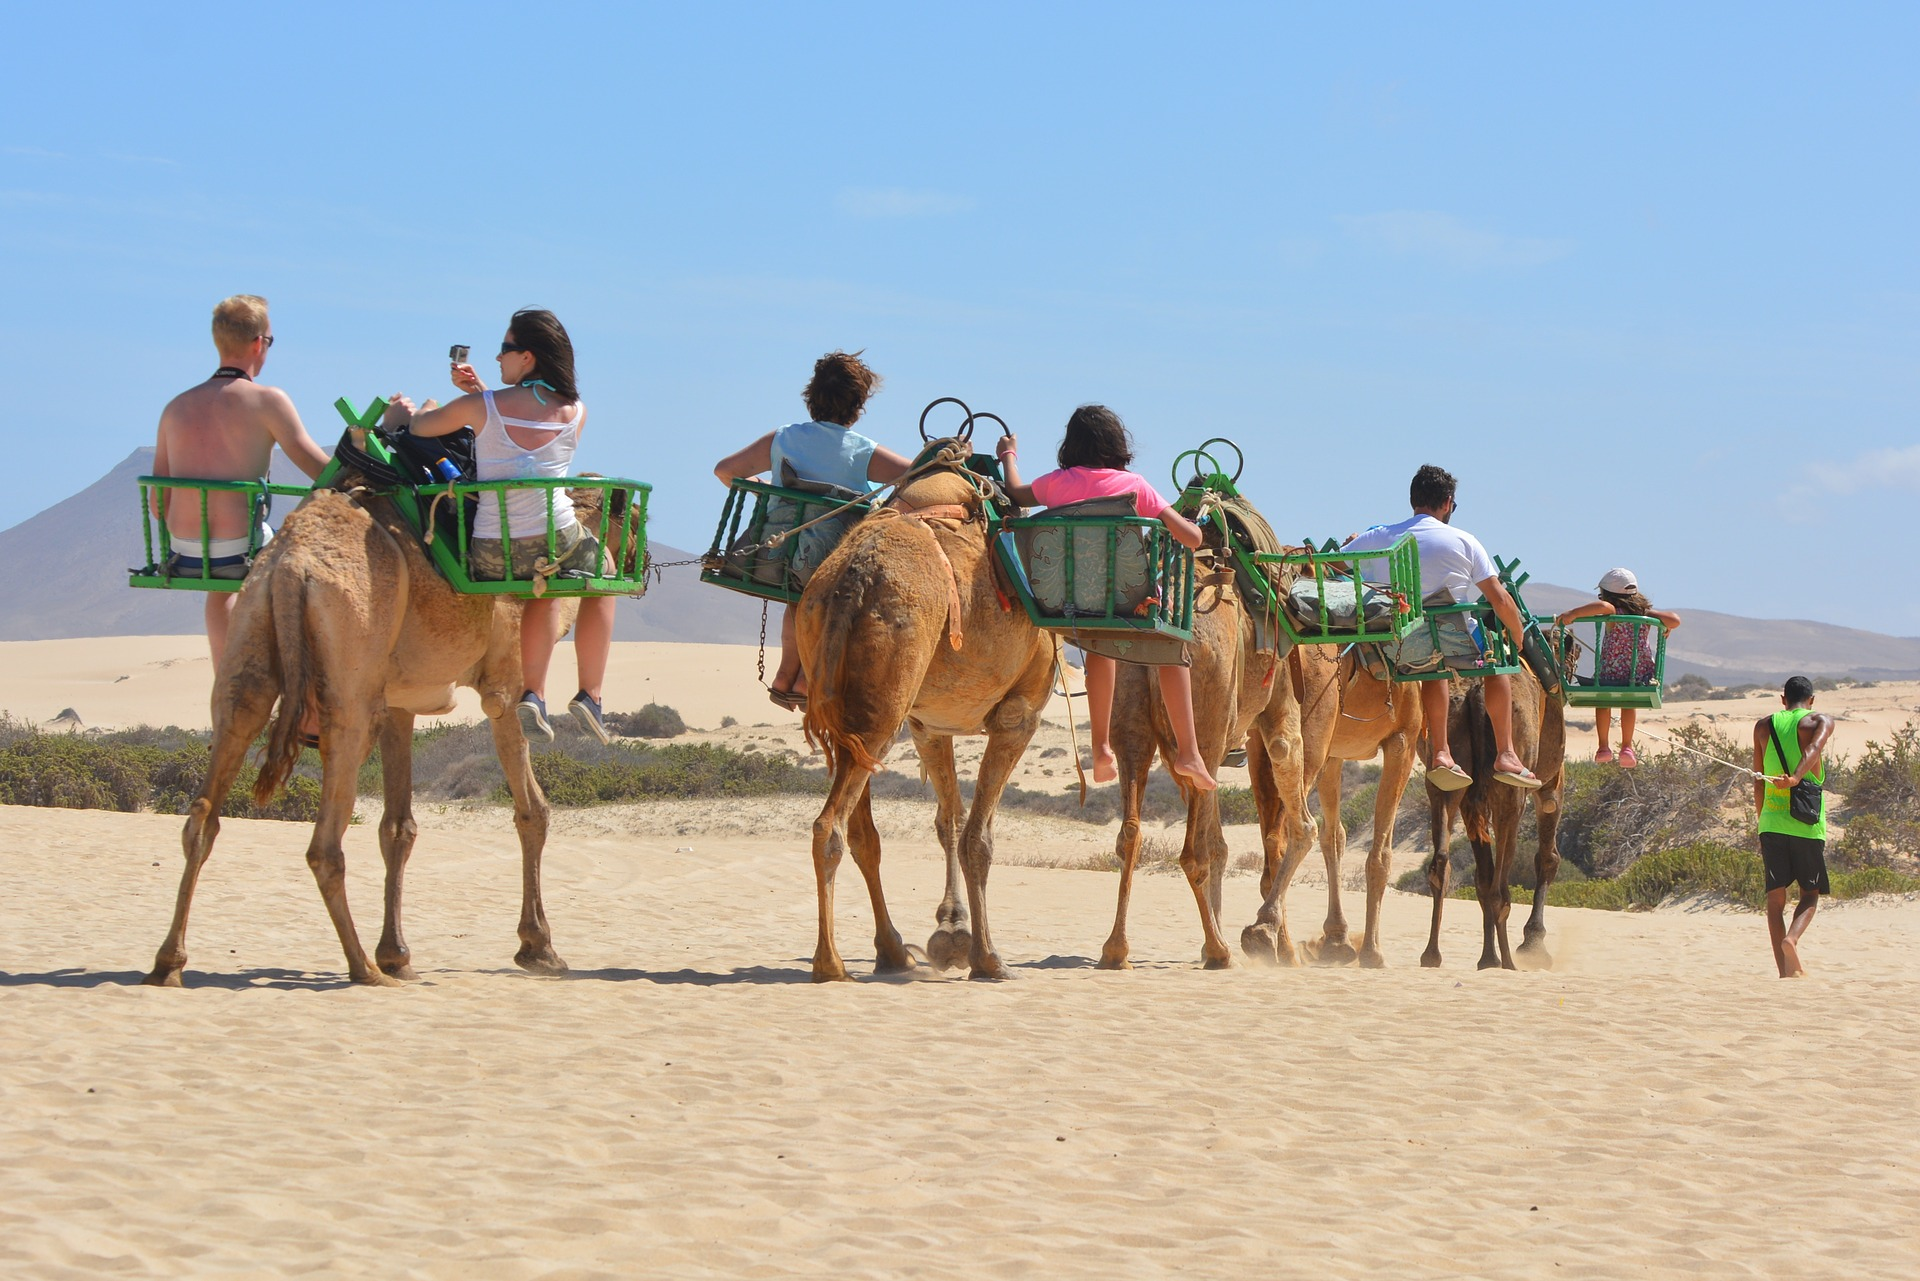 This camel tour is an example of extreme use of these animals.